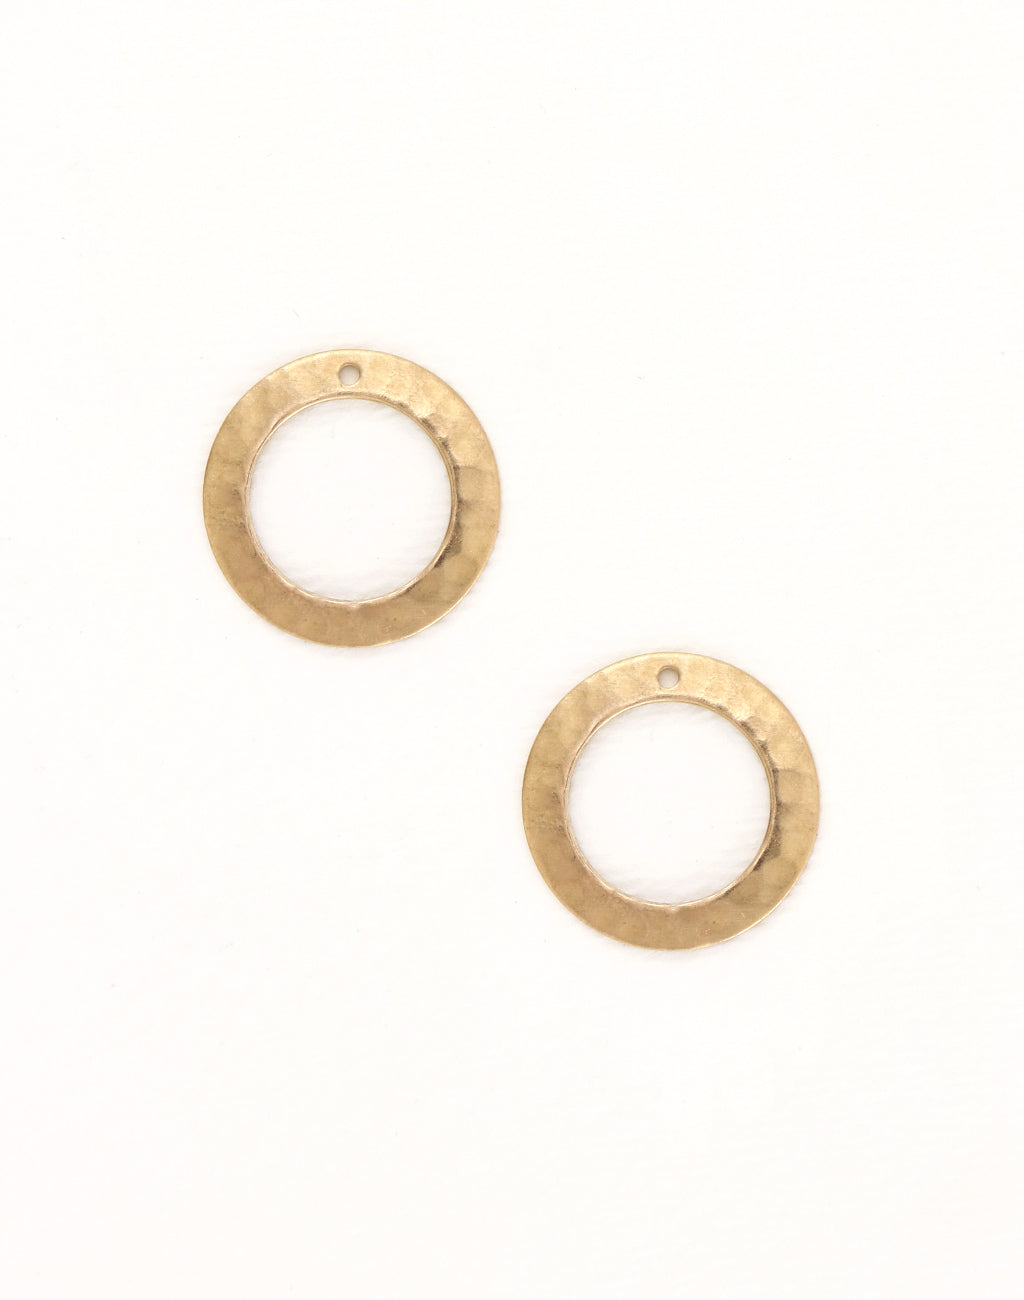 Tiny Hammered Ring, 19mm, (2pcs)